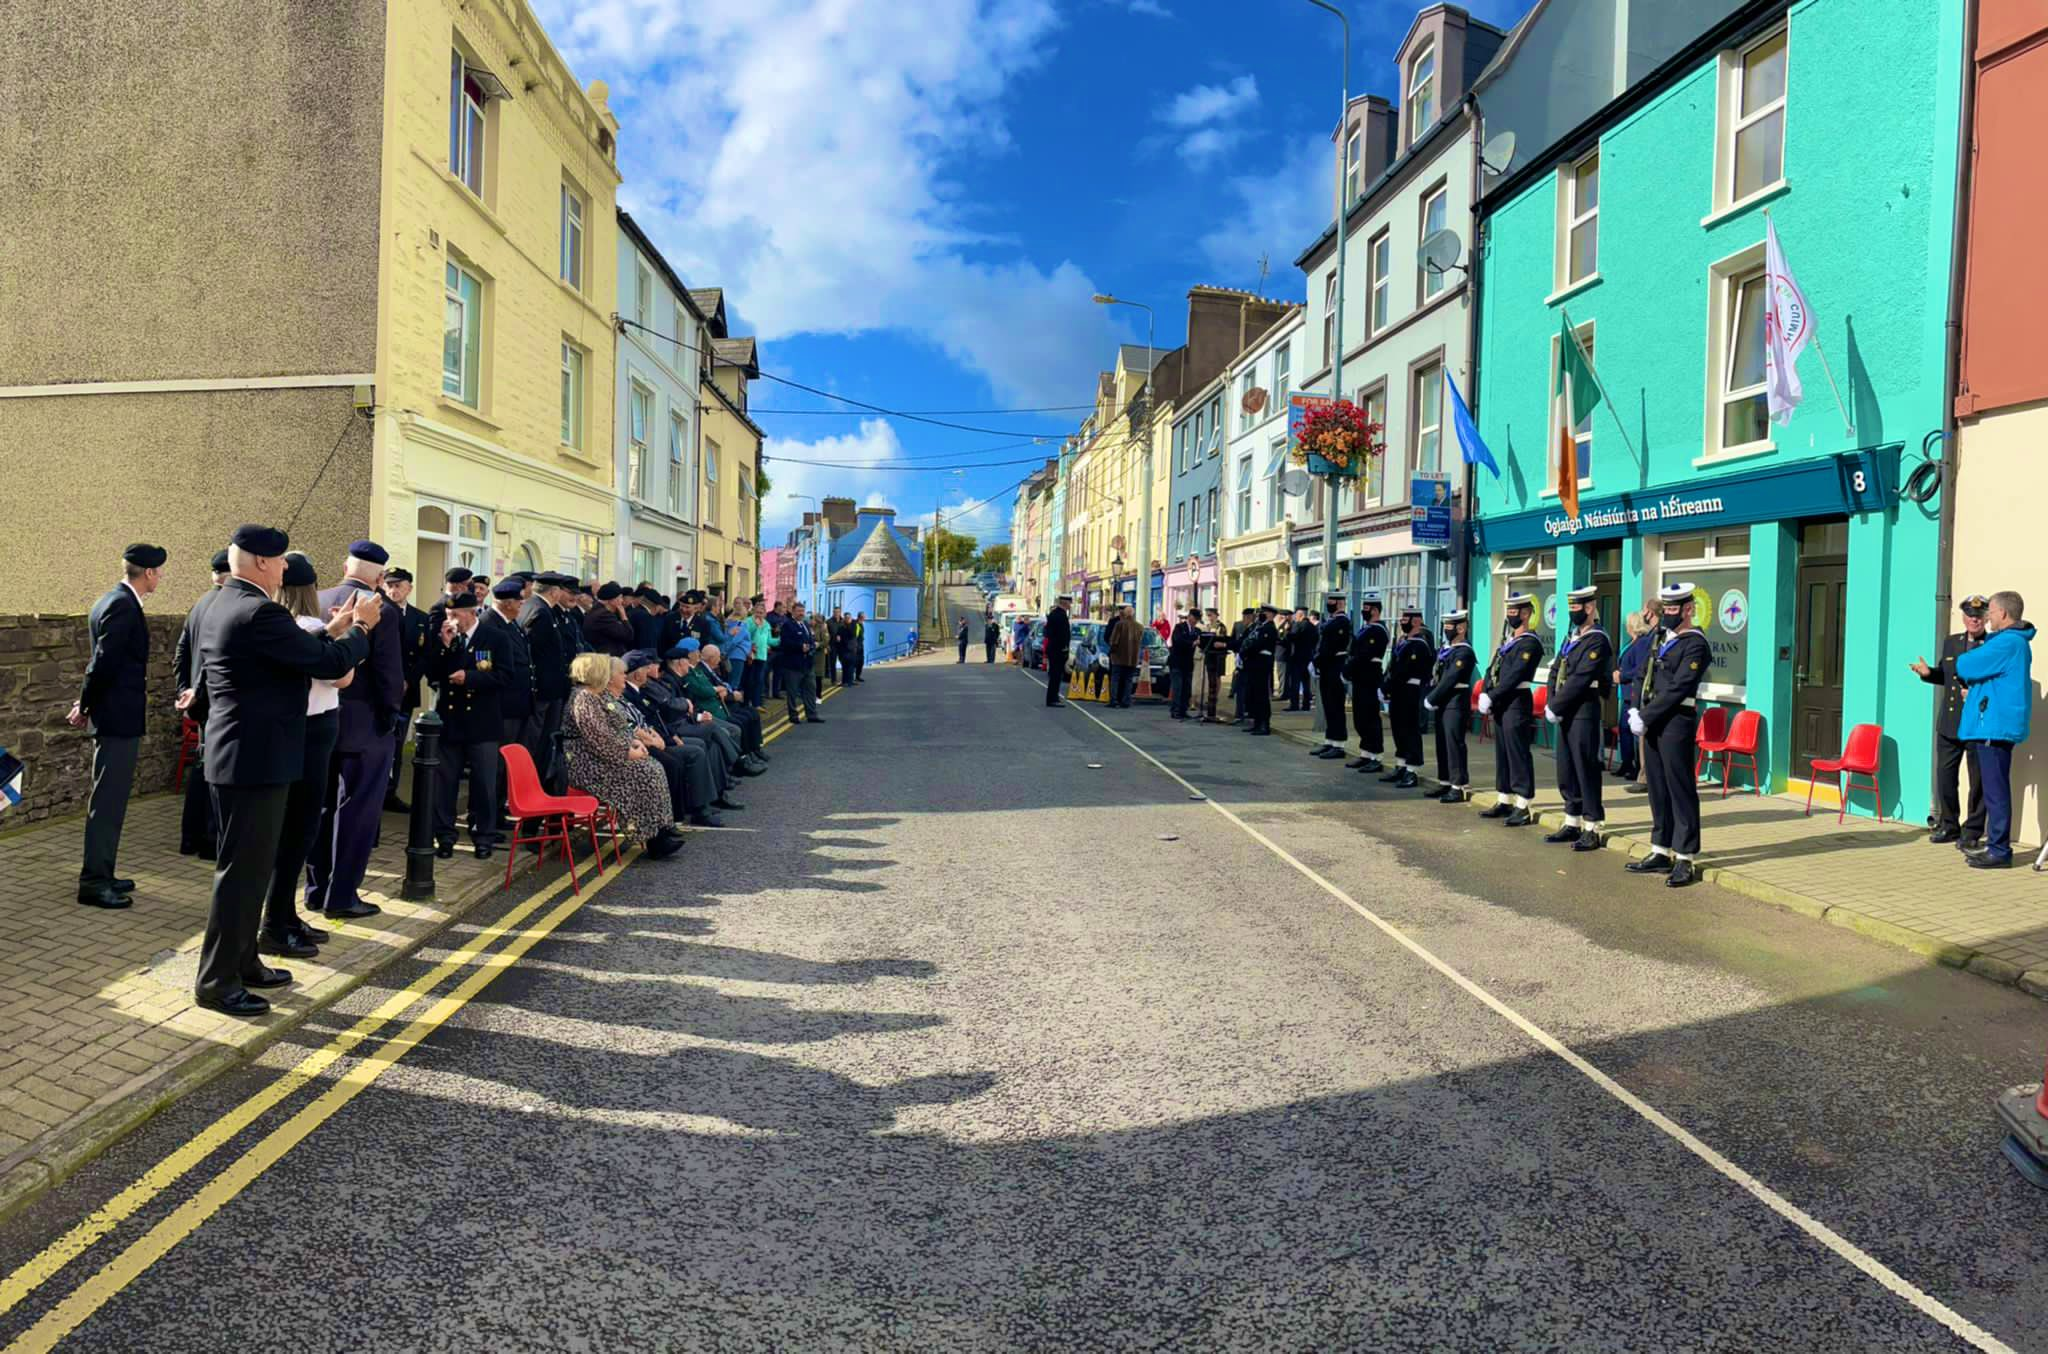 Minister for Defence Officially Opens O.N.E. Veteran Support Centre and Hostel at Cobh